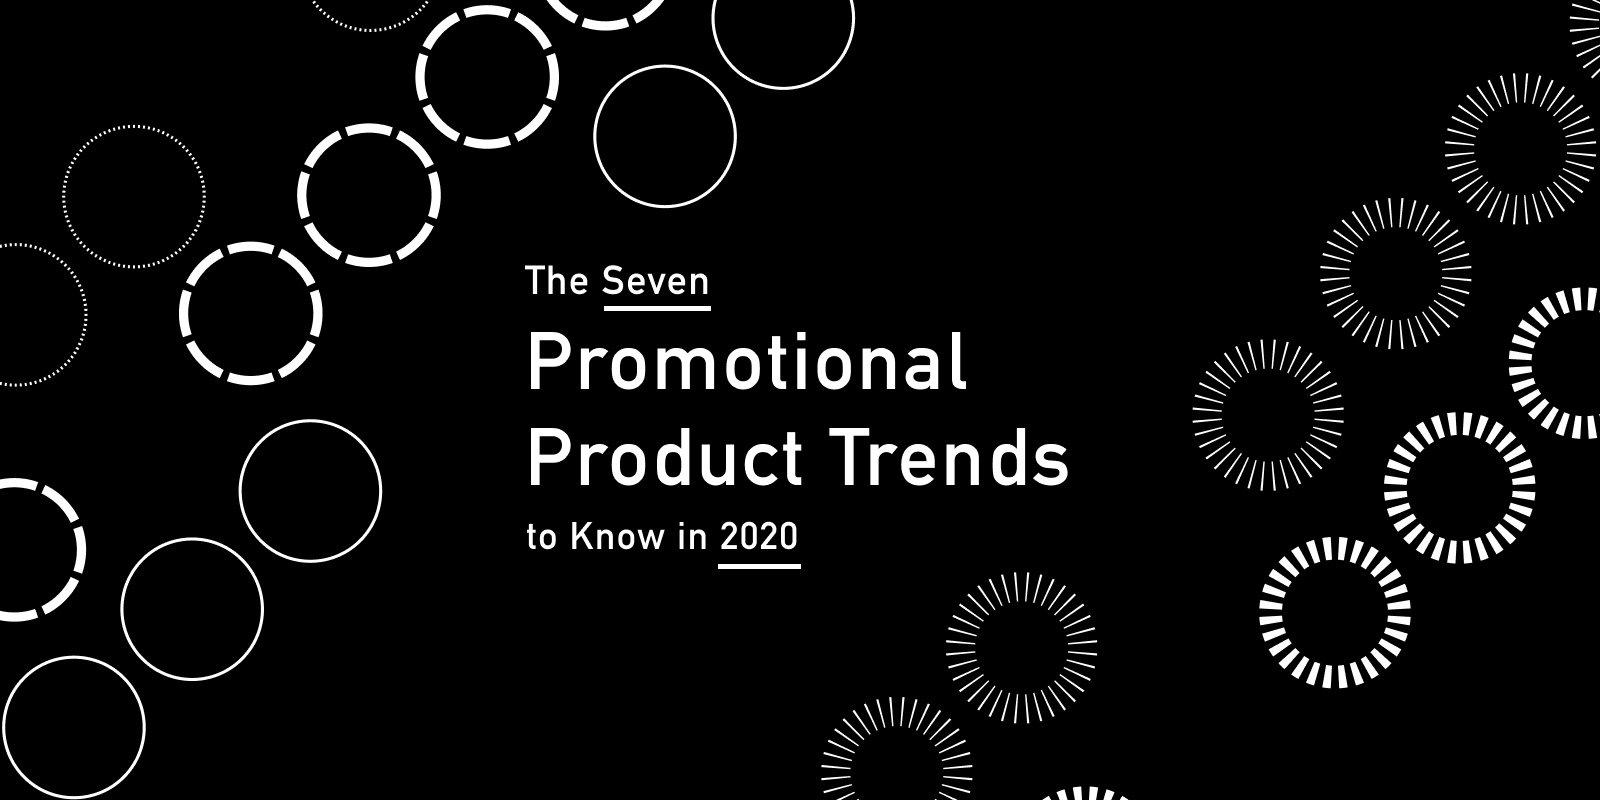 The 7 Promotional Product Trends to Know in 2020 - ZOOMcatalog Blog